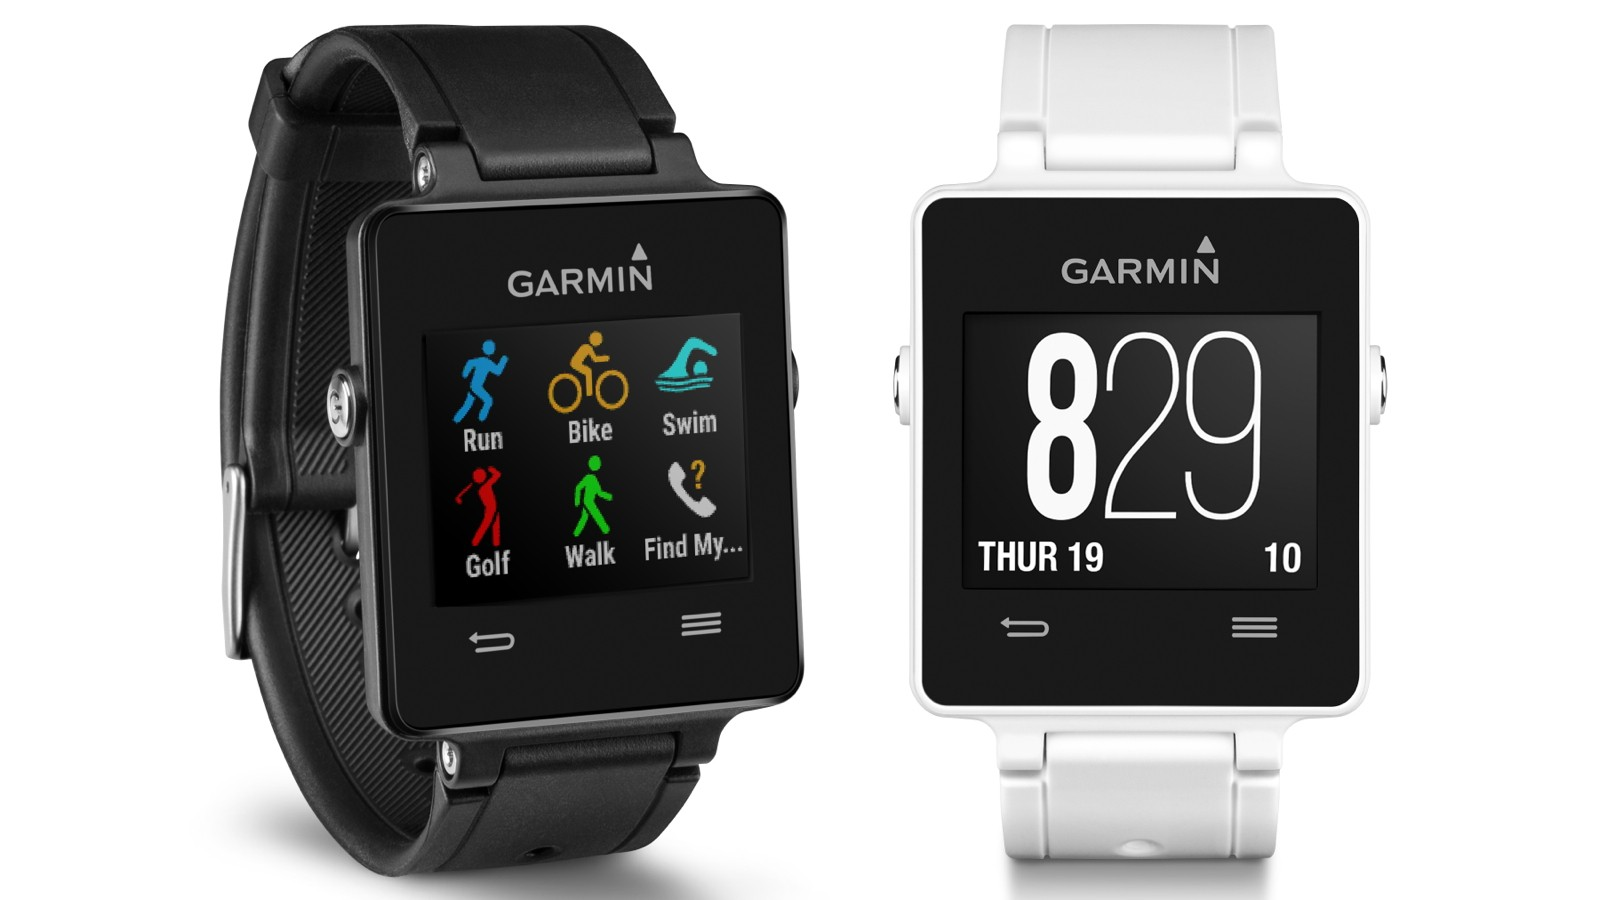 The Garmin Vivoactive is a GPS-enabled smartwatch with built-in sports apps